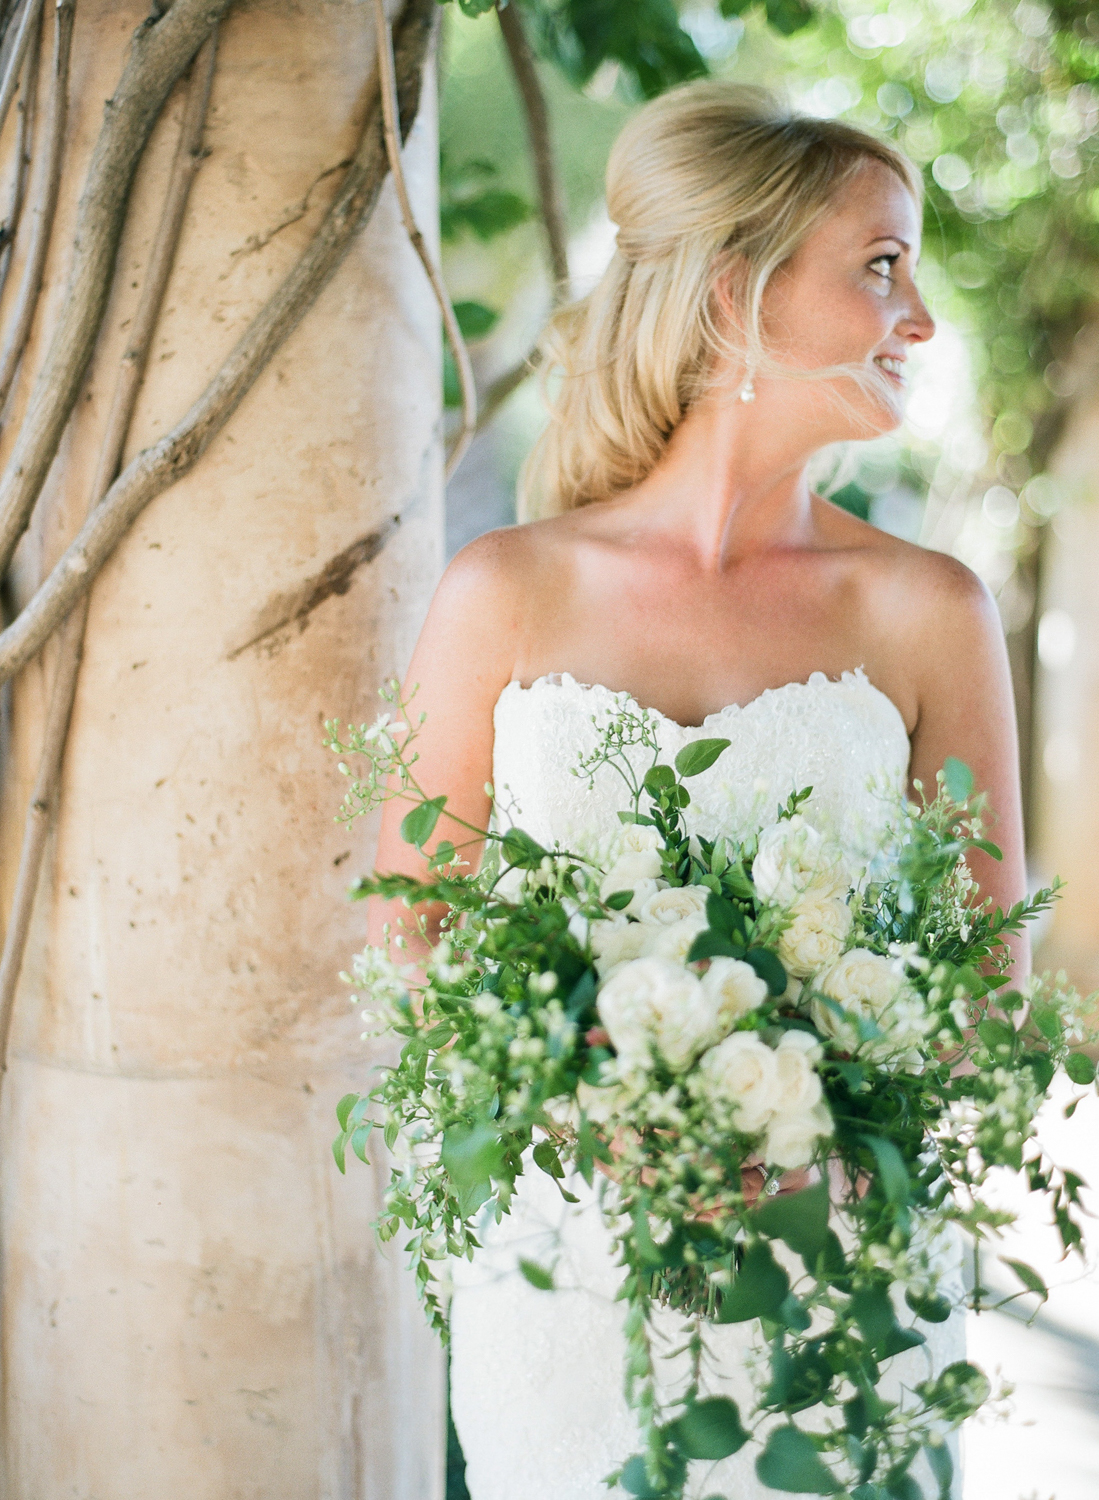 A romantic shot of the bride looking at her groom over her shoulder, dressed in a sweetheart neckline lace dress, holding a cascading bouquet; photo by Sylvie Gil